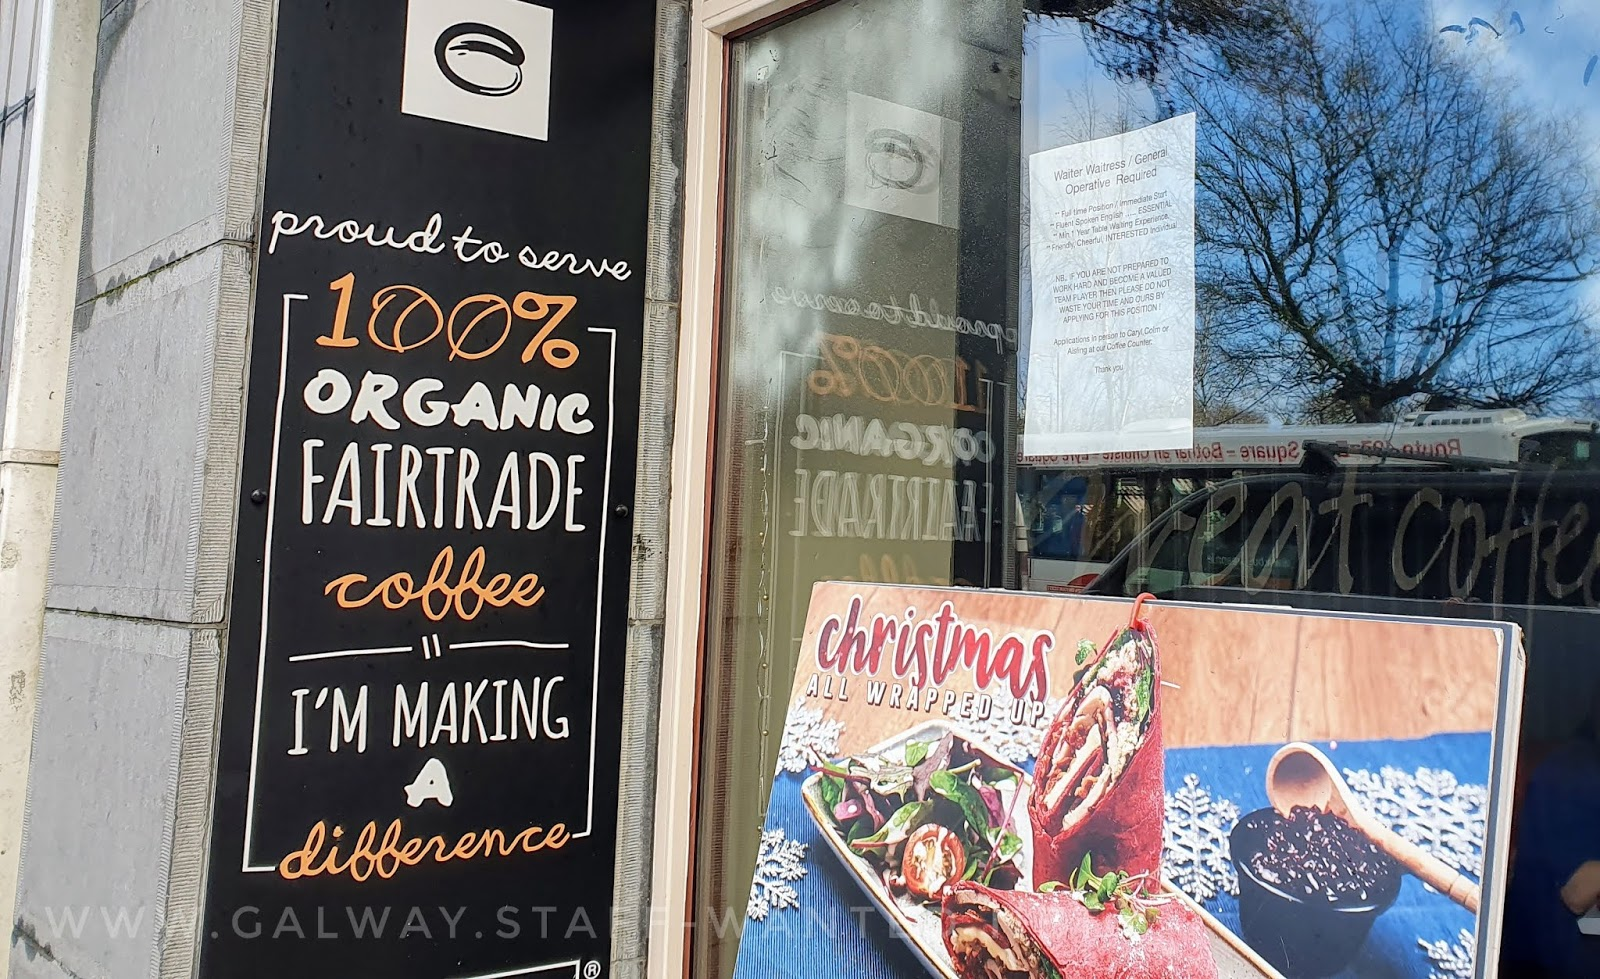 front window of a city centre cafe, with an advertisign sign for their Christmas wrap, made with bright red bread and turkey - Christmas all wrapped up